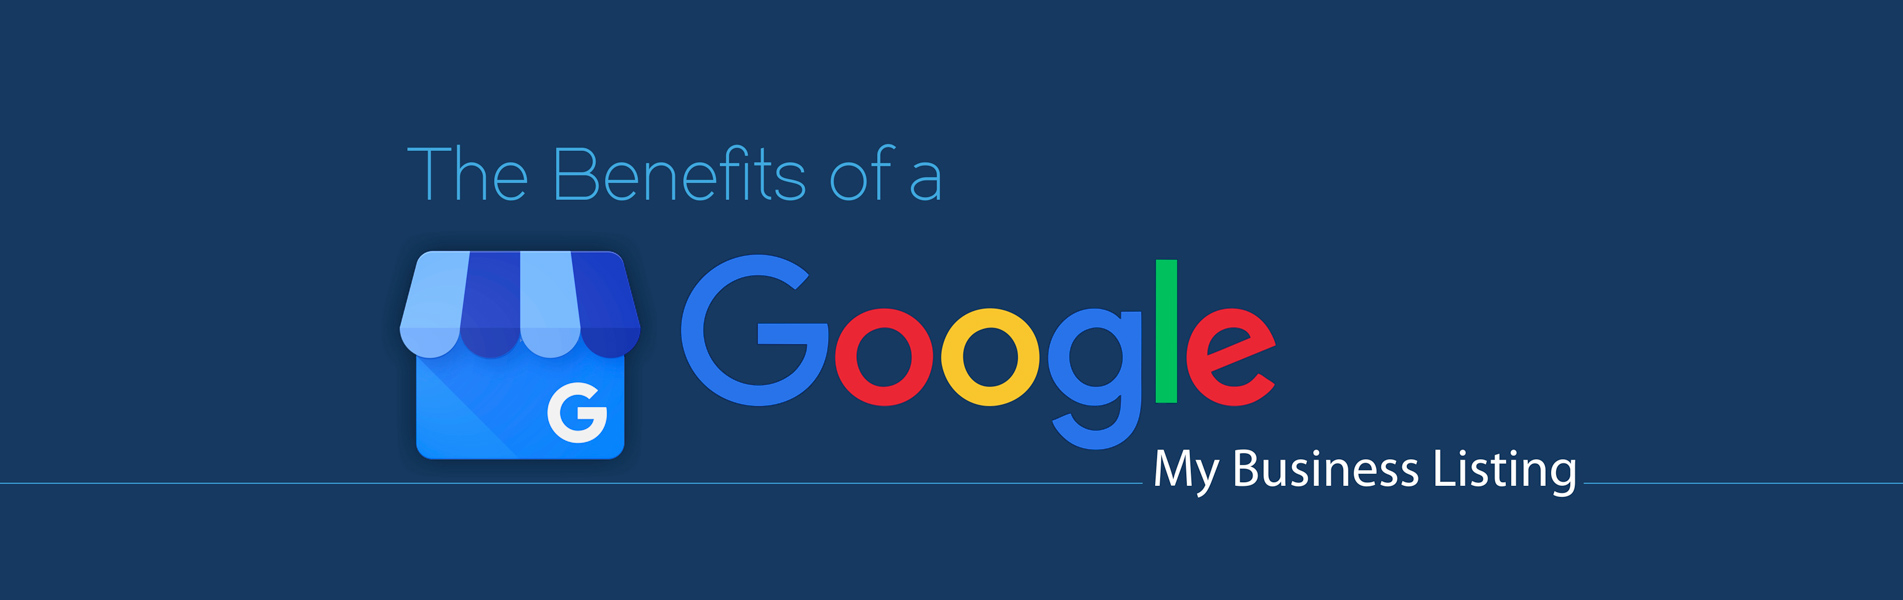 The-Benefits-of-a-Google-My-Business-Listing